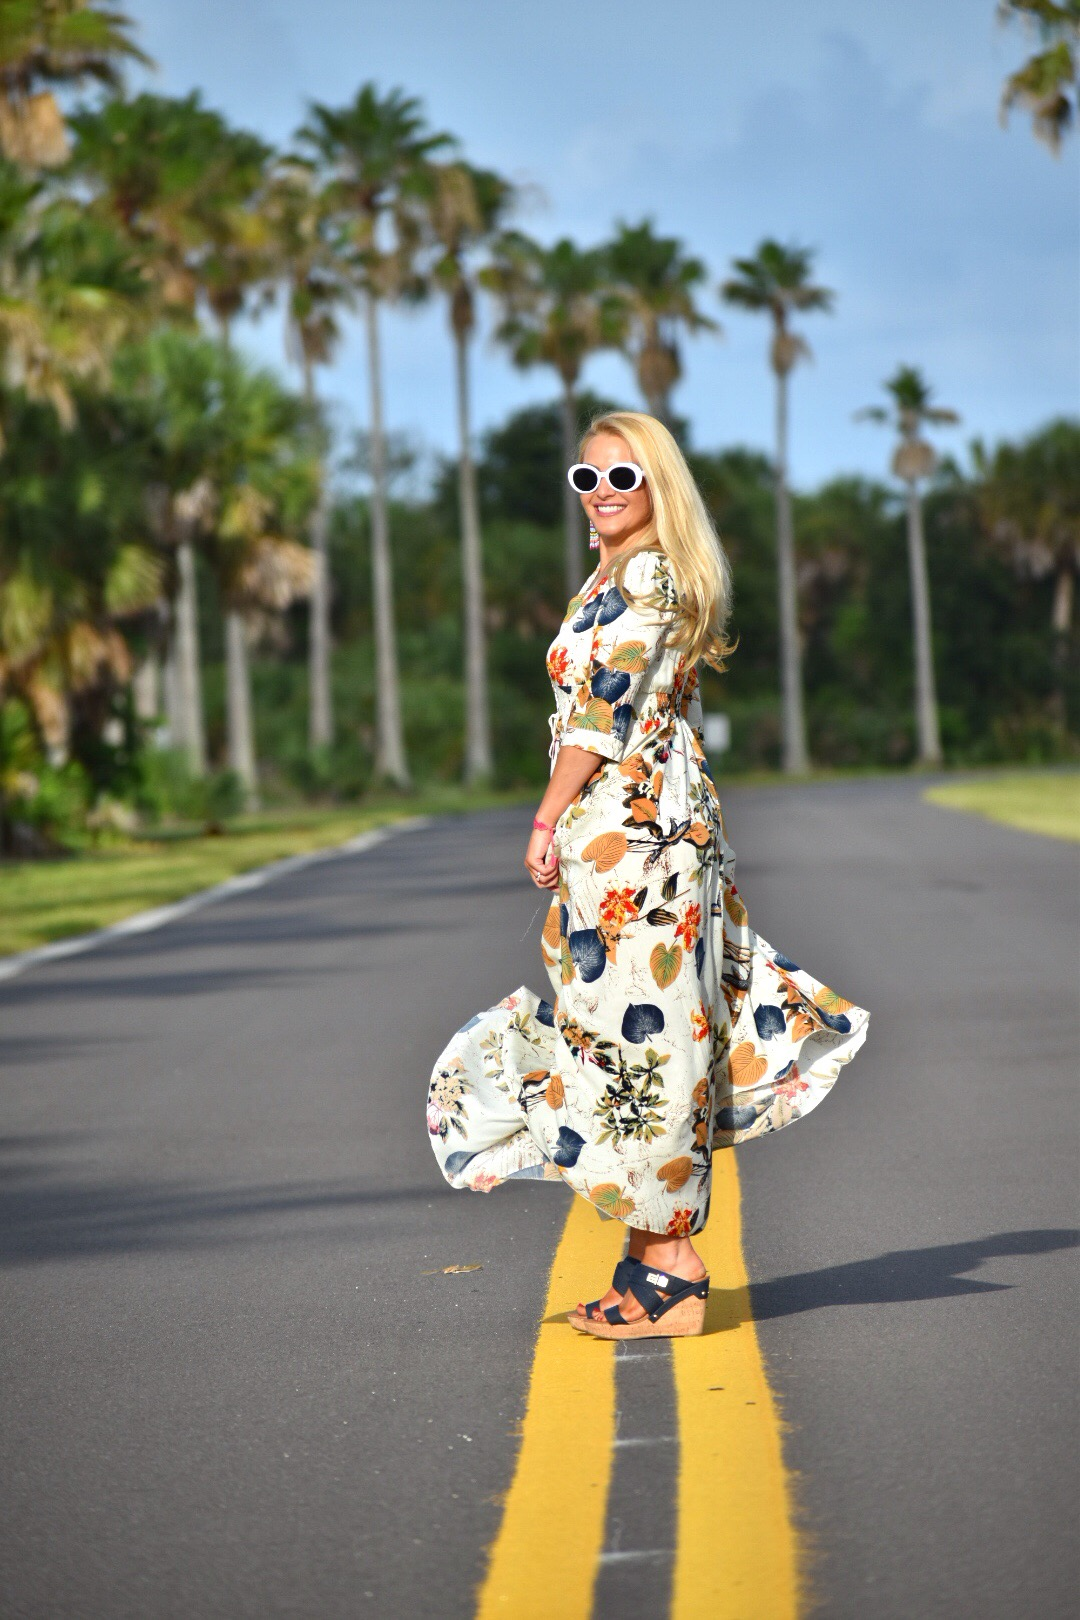 Bohemian Style, Floral Dress, White Oval Sunglasses and Wedges in Fort DeSoto Florida